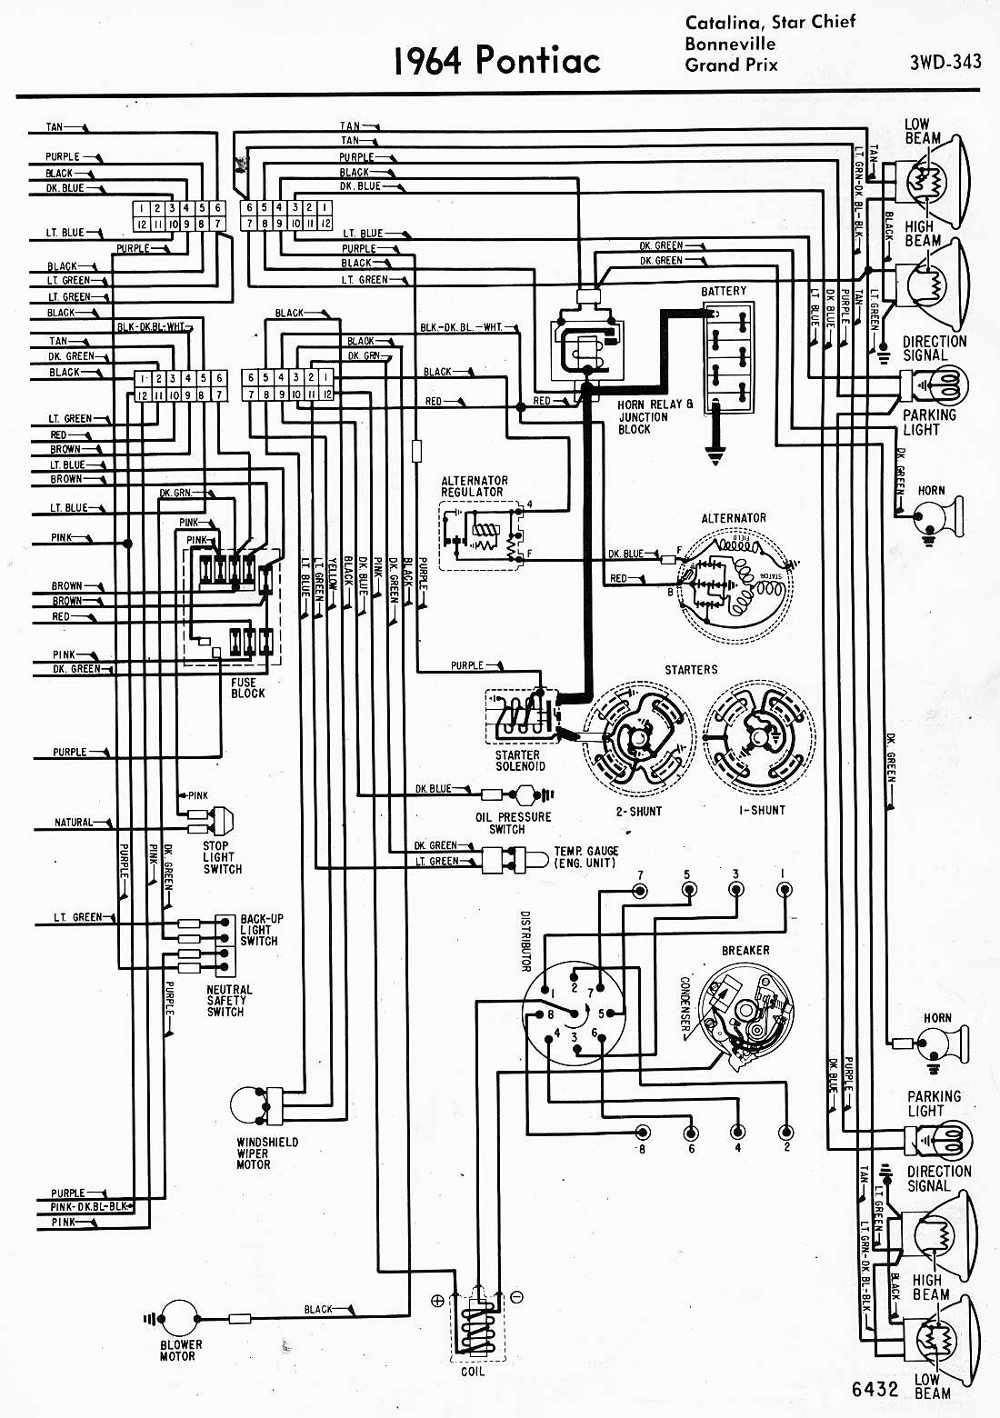 XM_0173] 92 Pontiac Bonneville Parts Fuse Box Schematic Wiring